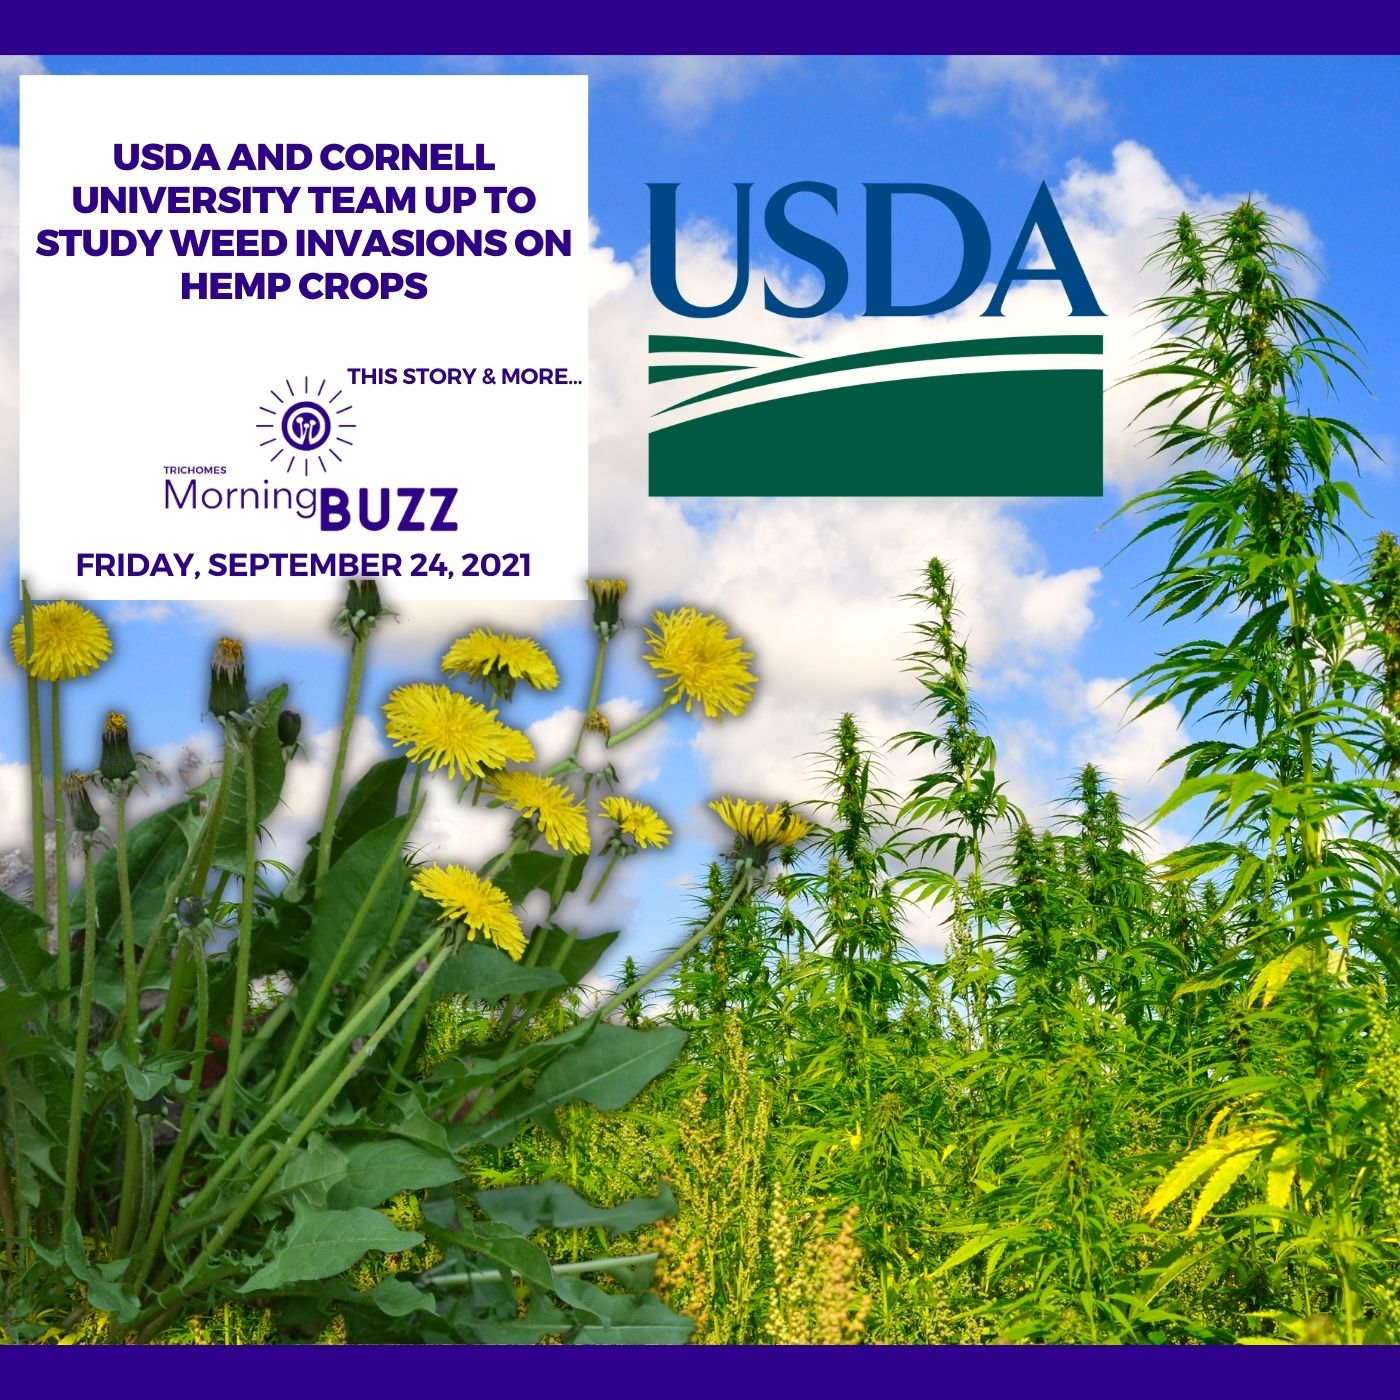 USDA and Cornell University Team Up To Study Weed Invasions On Hemp Crops show art